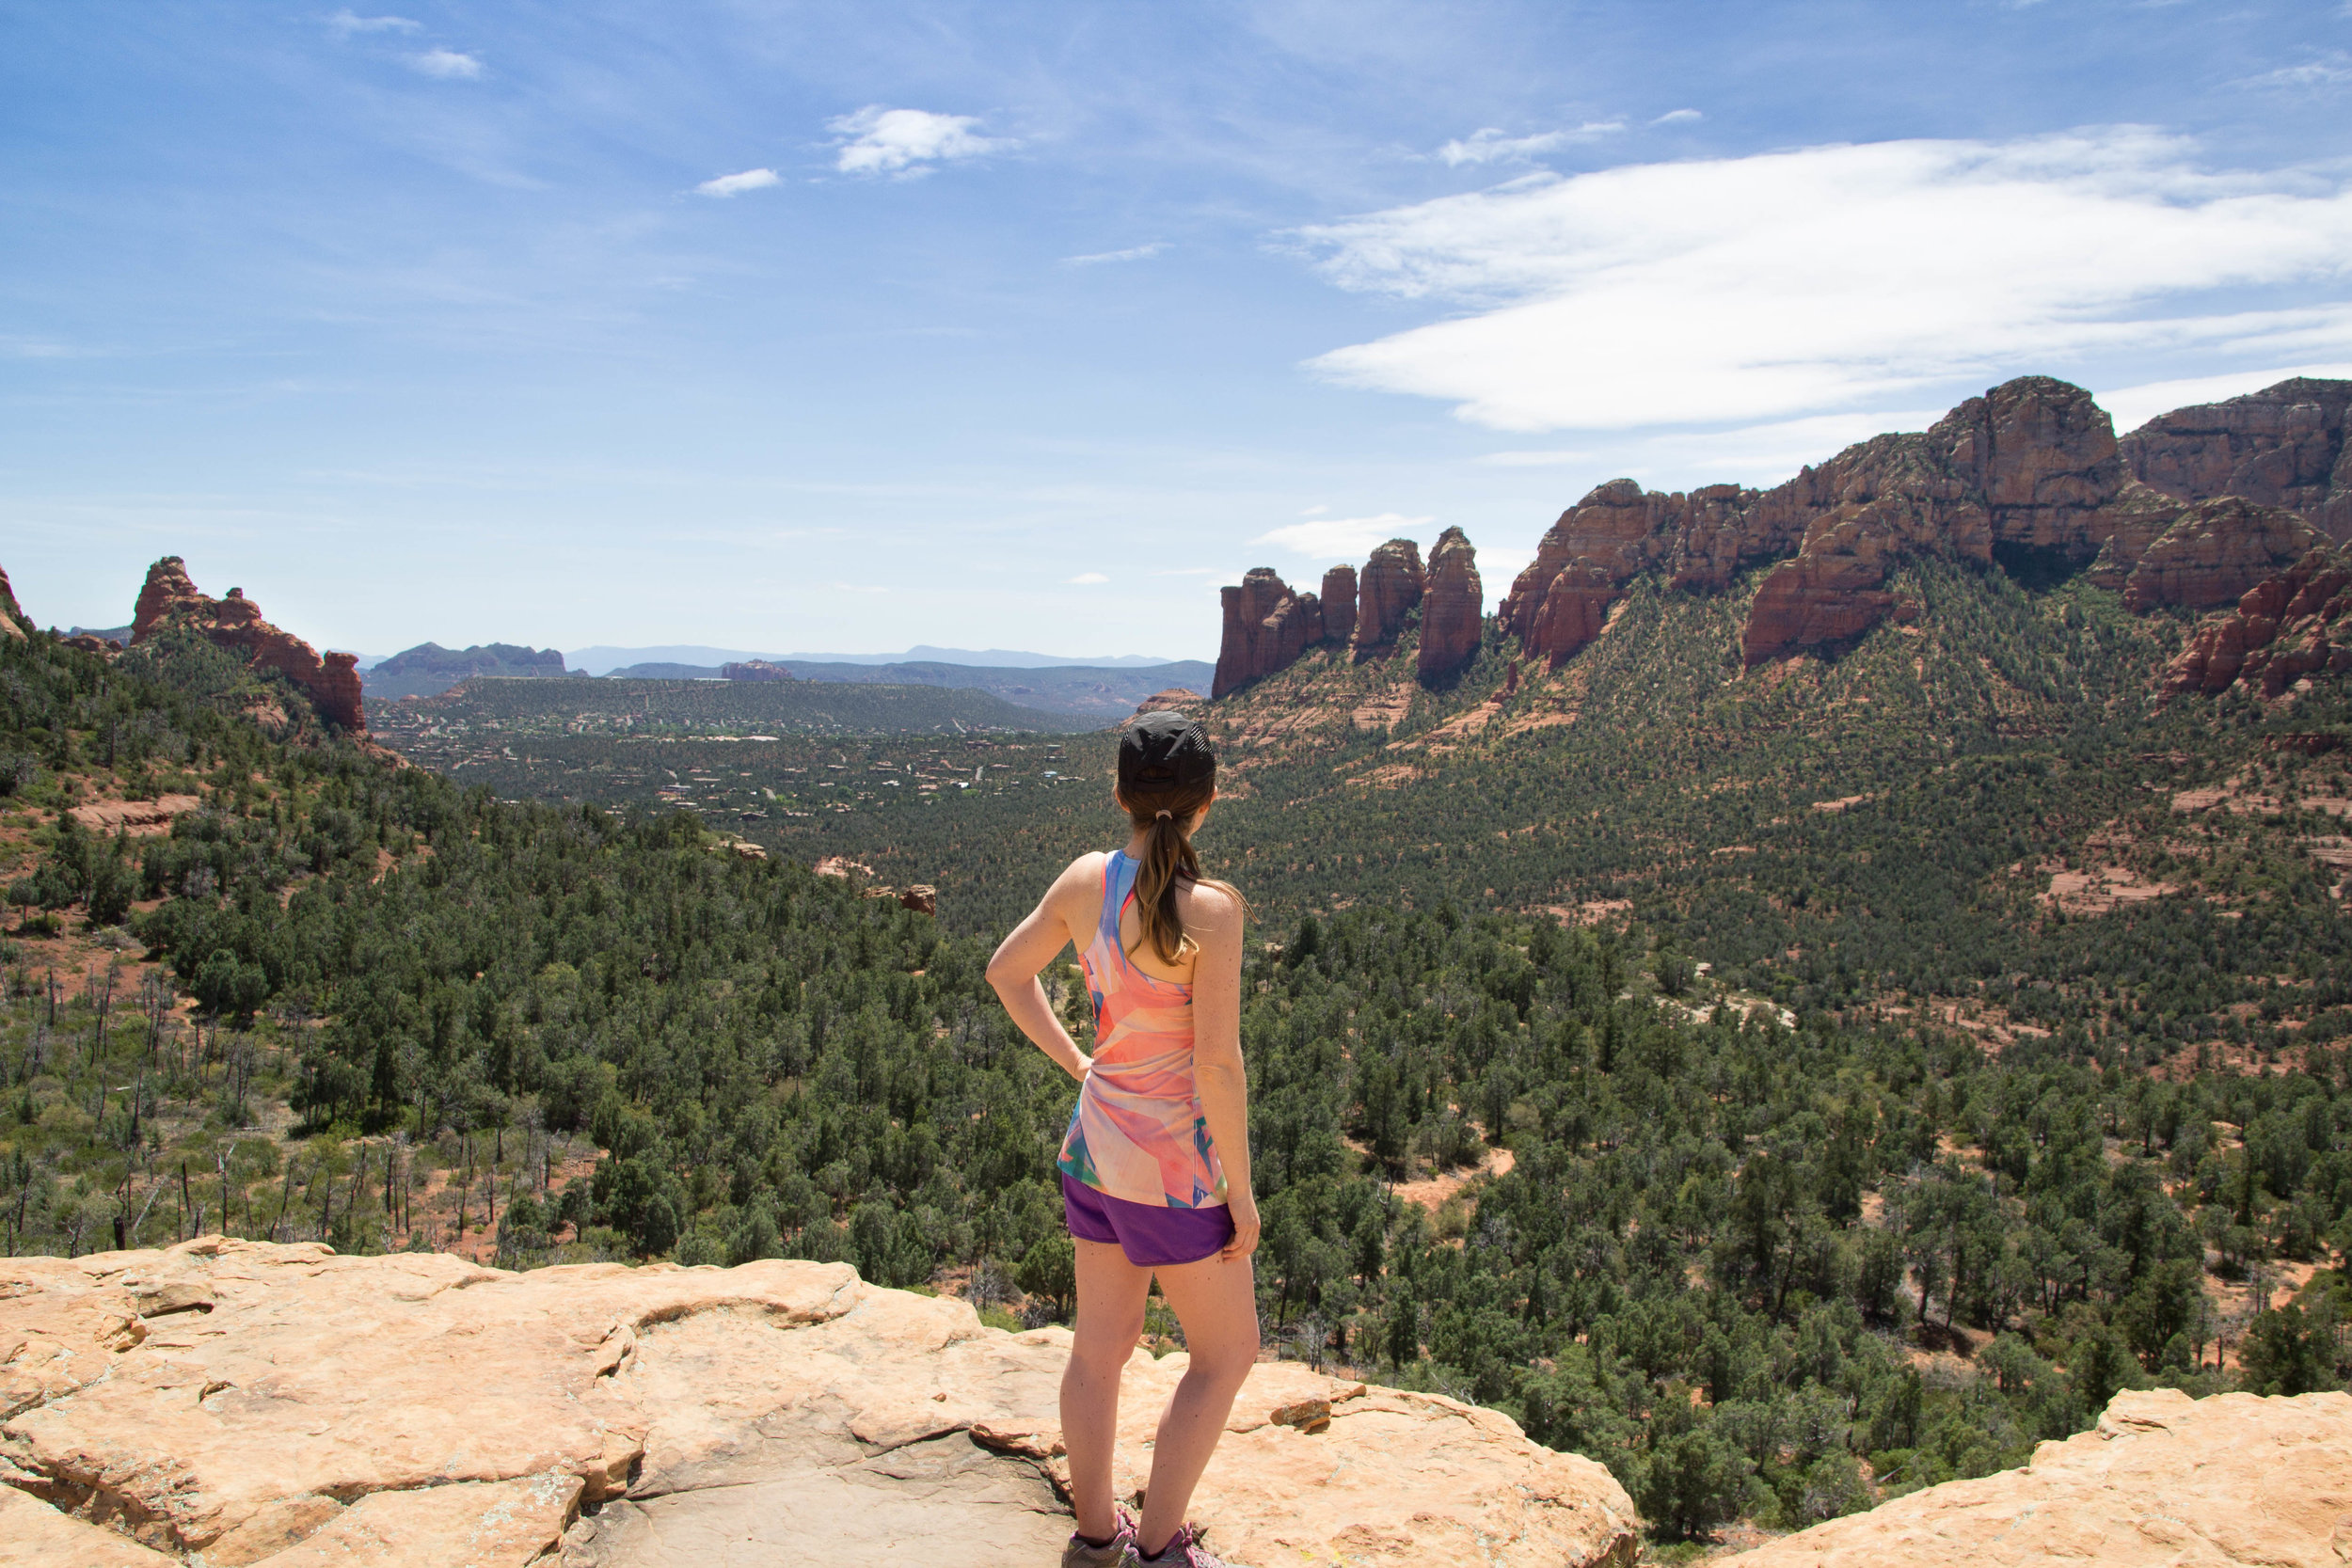 View from atop Brins Mesa